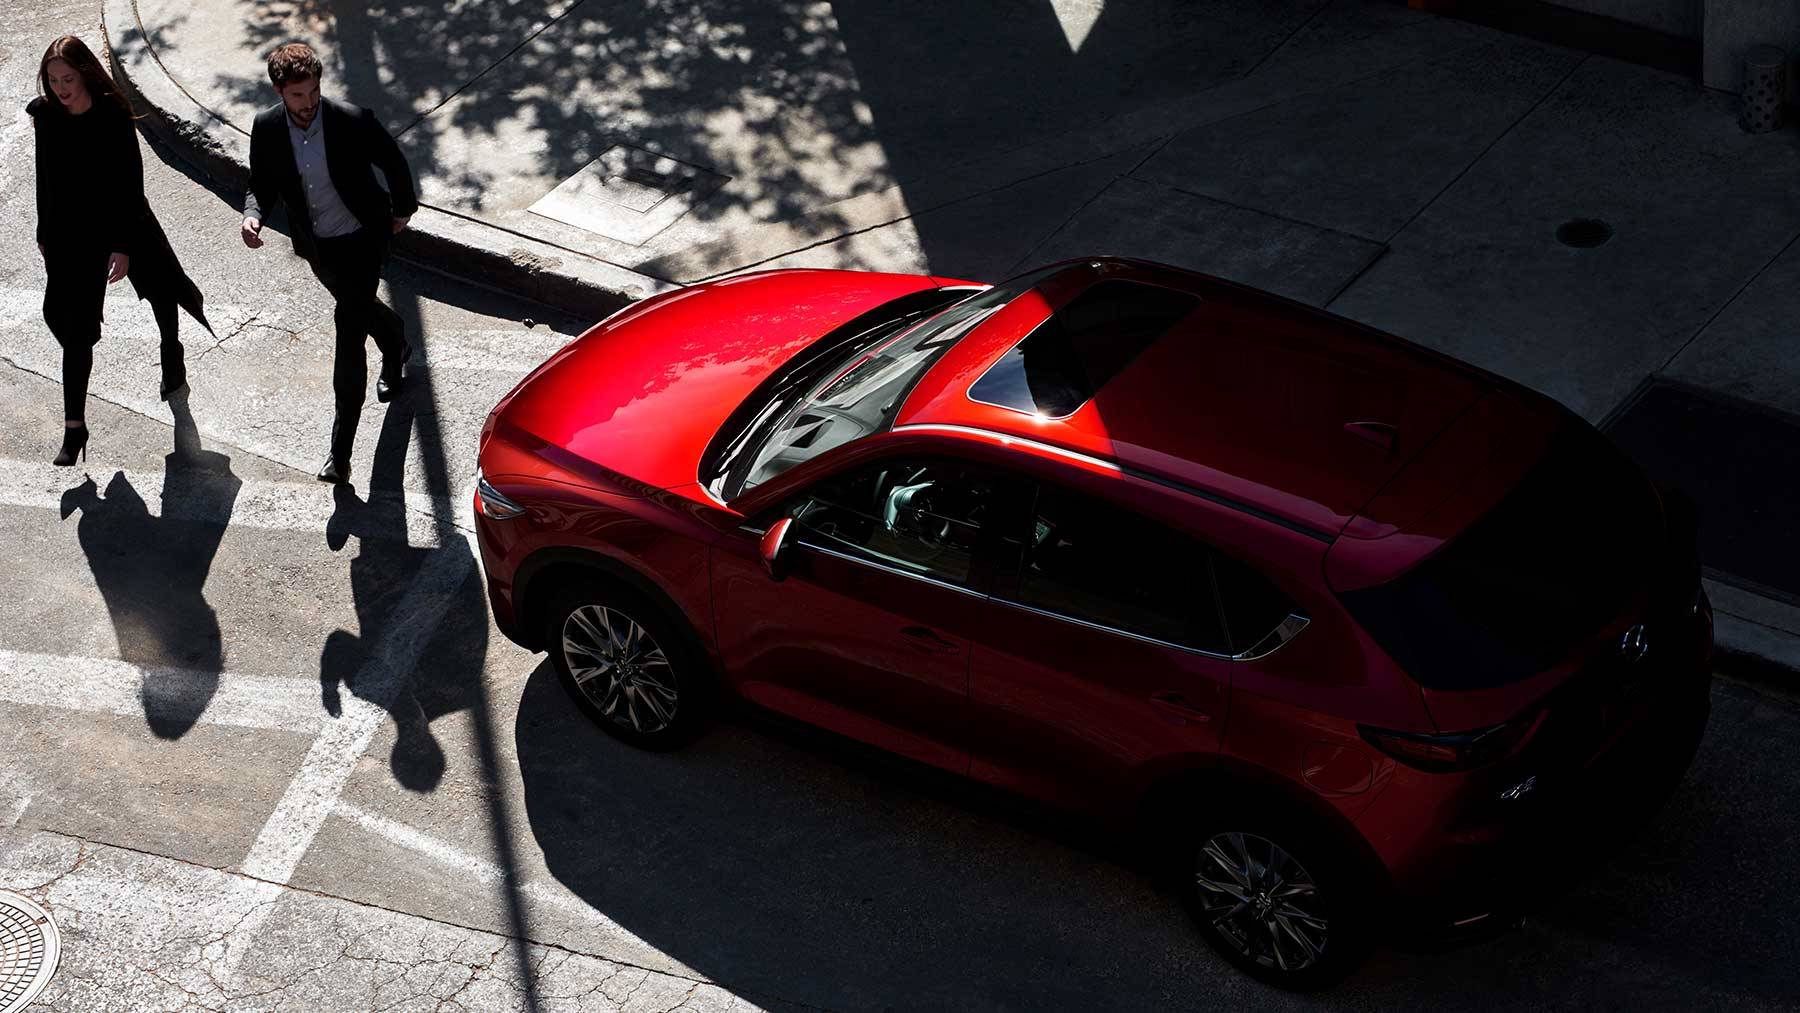 2019 Mazda CX-5 vs Ford Focus Exterior near St. Charles, IL